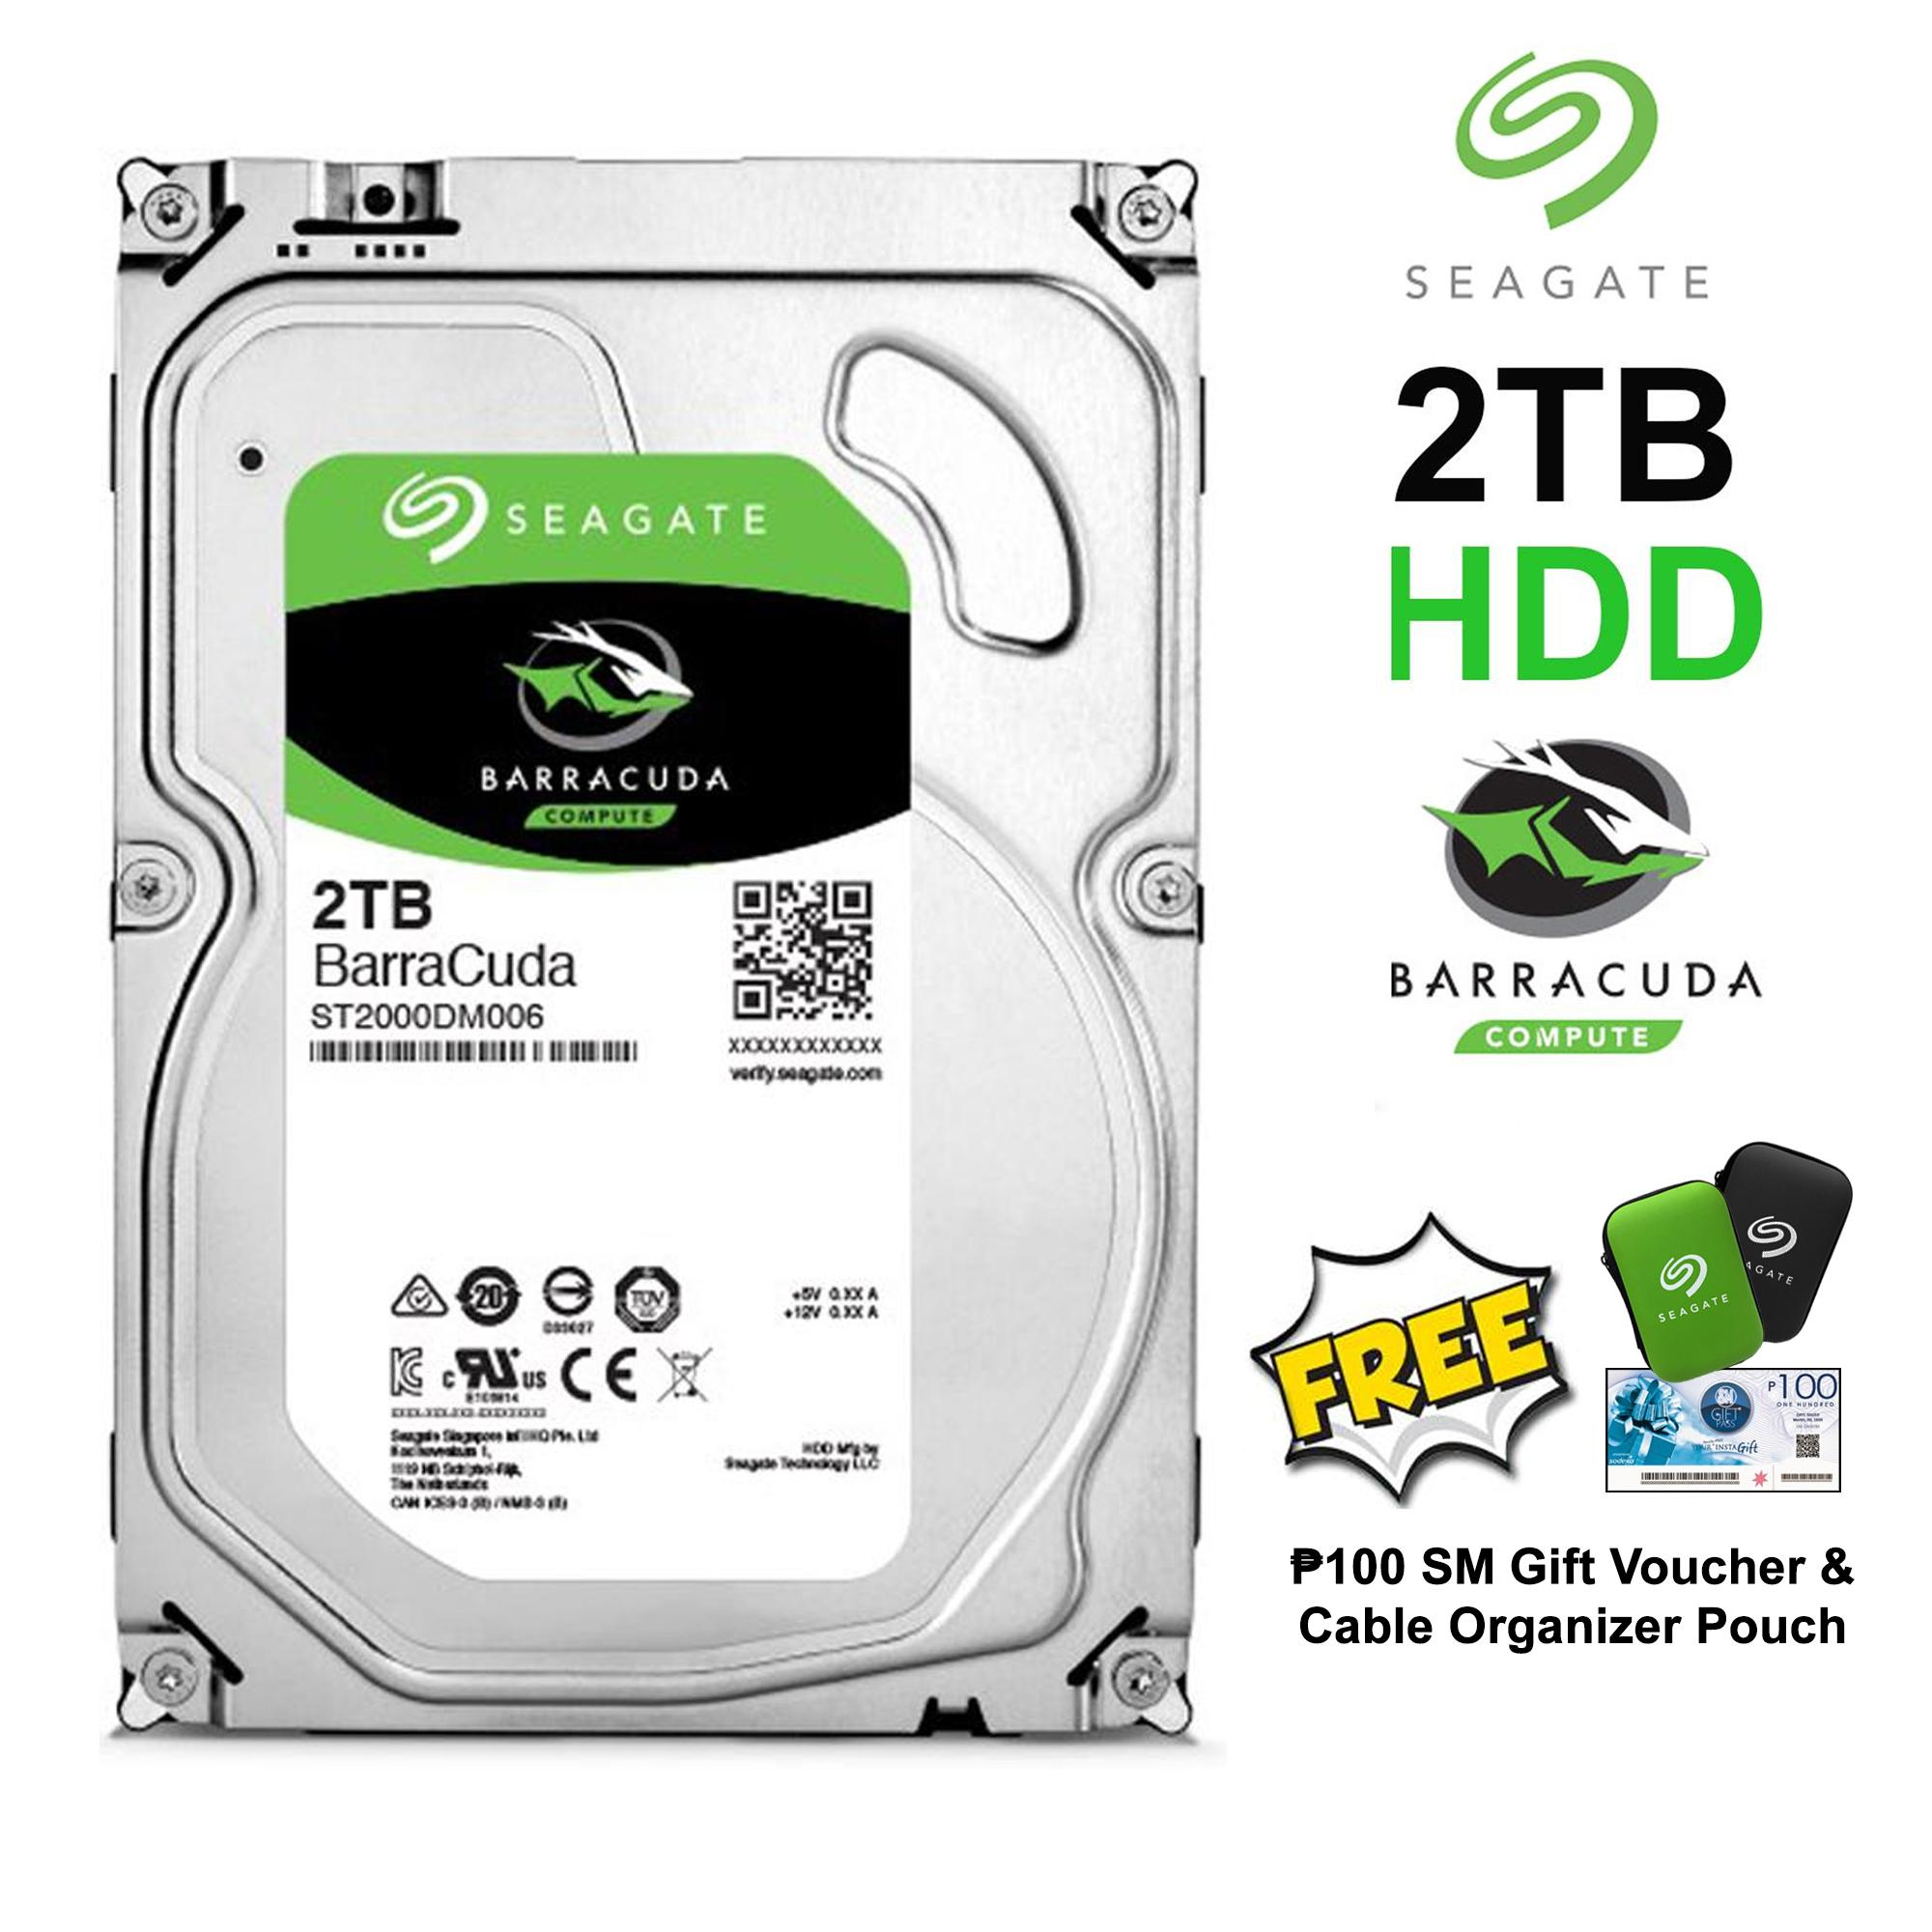 Seagate 2TB BarraCuda SATA 6Gb/s 64MB Cache 3 5-Inch Internal Hard Drive  for Desktop (ST2000DM006) with FREE Php 100 SM Gift Voucher & Cable  Organizer